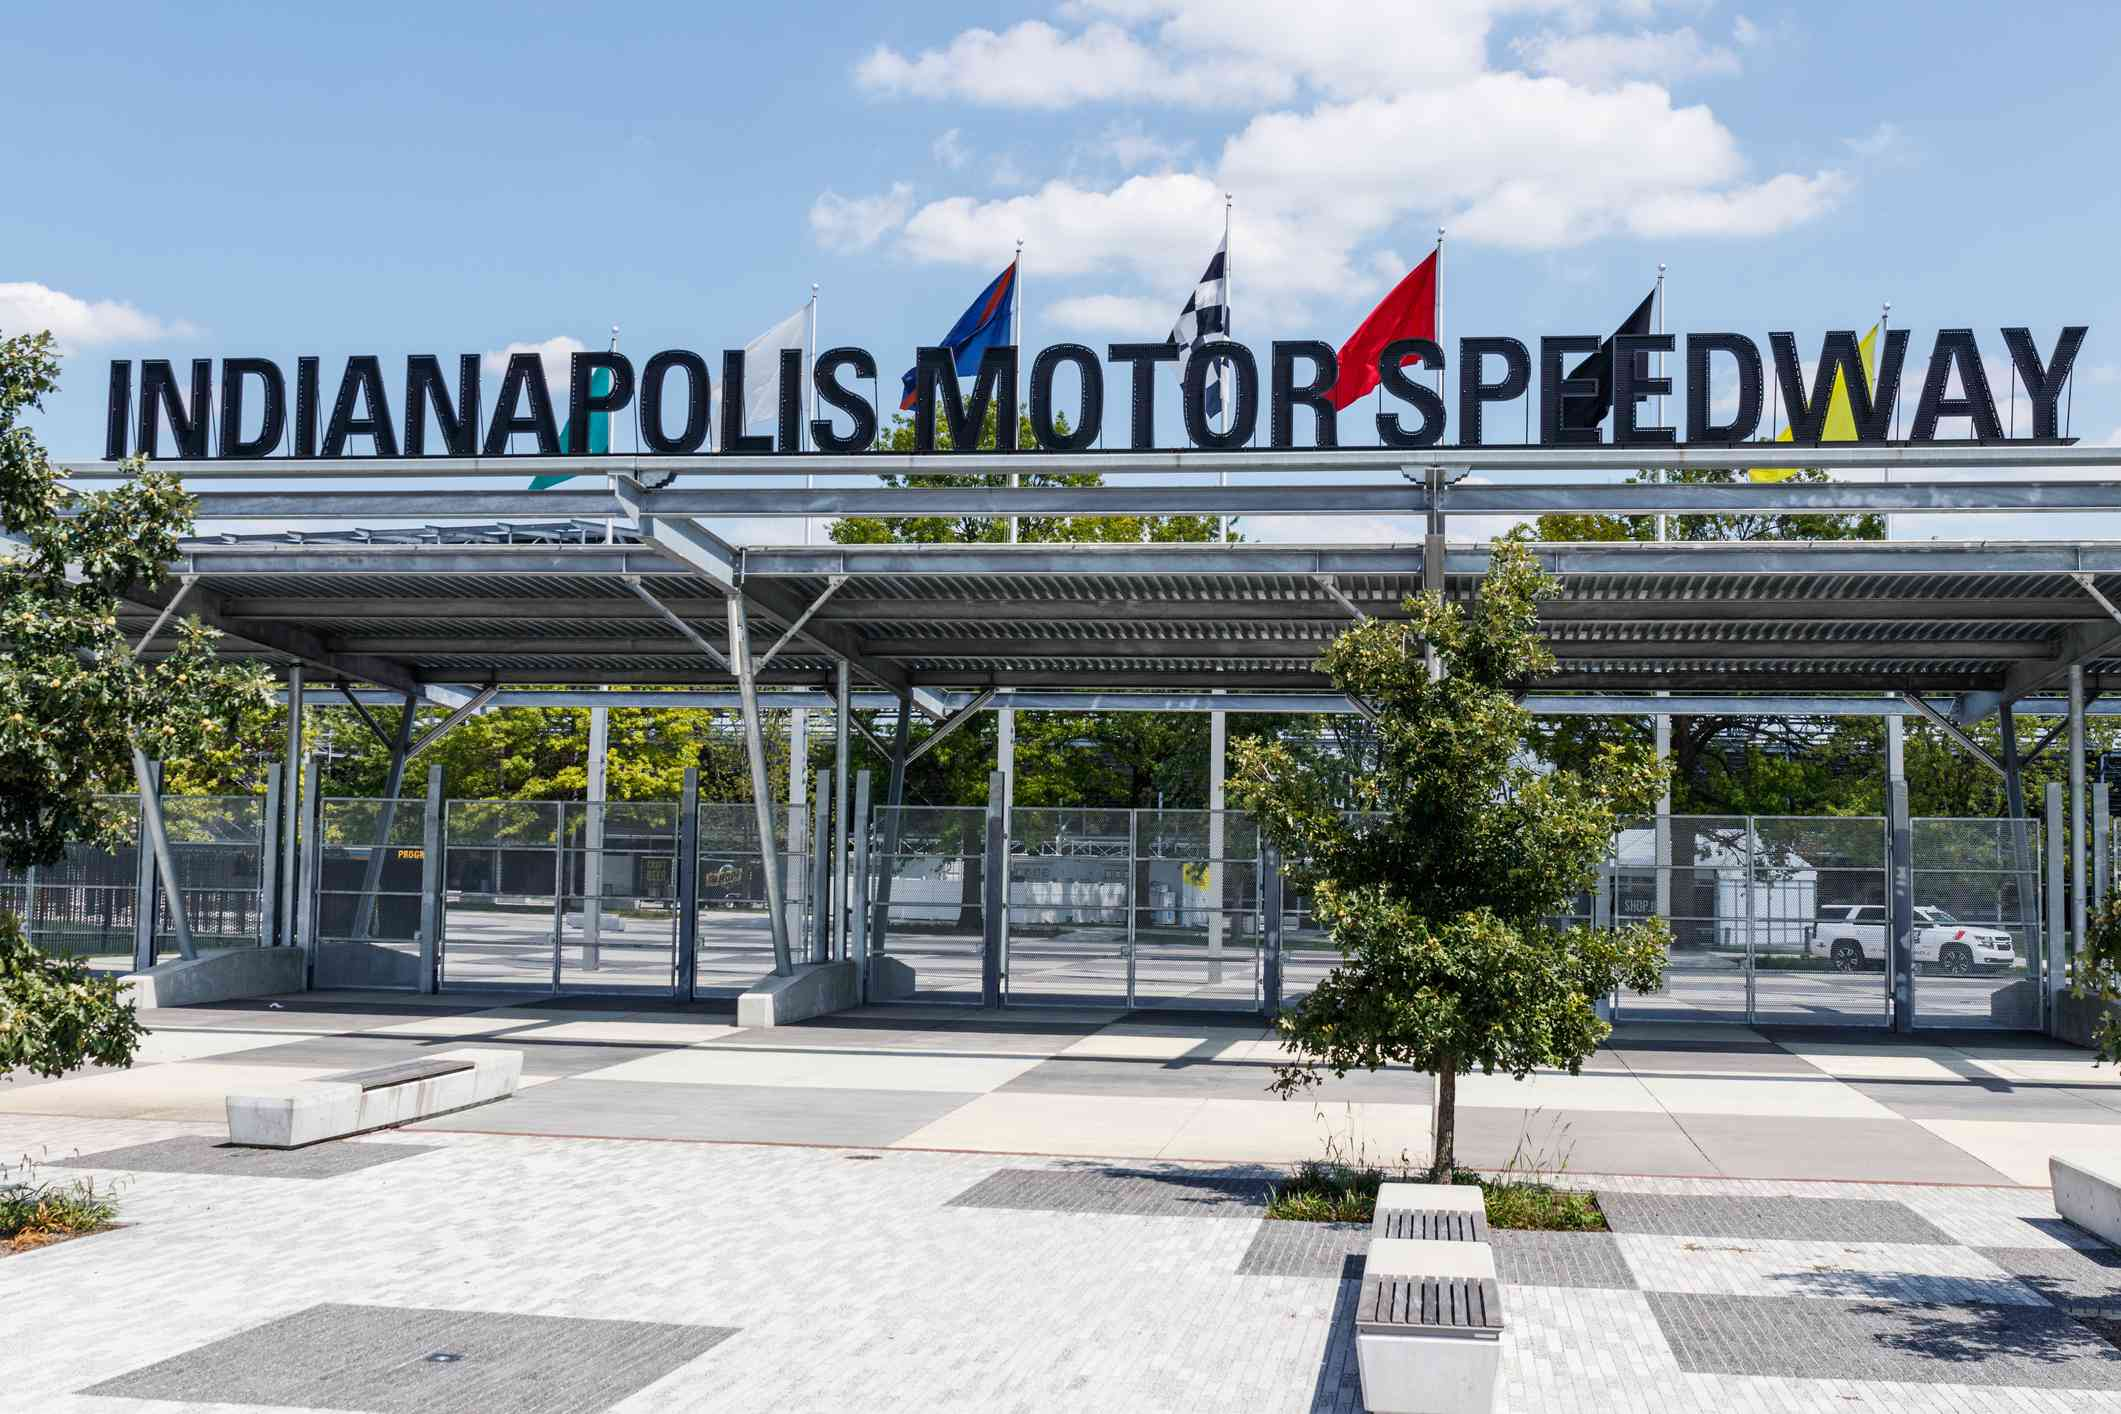 Indianapolis Motor Speedway Gate 1 Entrance. IMS Hosts the Indy 500 and Brickyard 400 Auto Races XVI